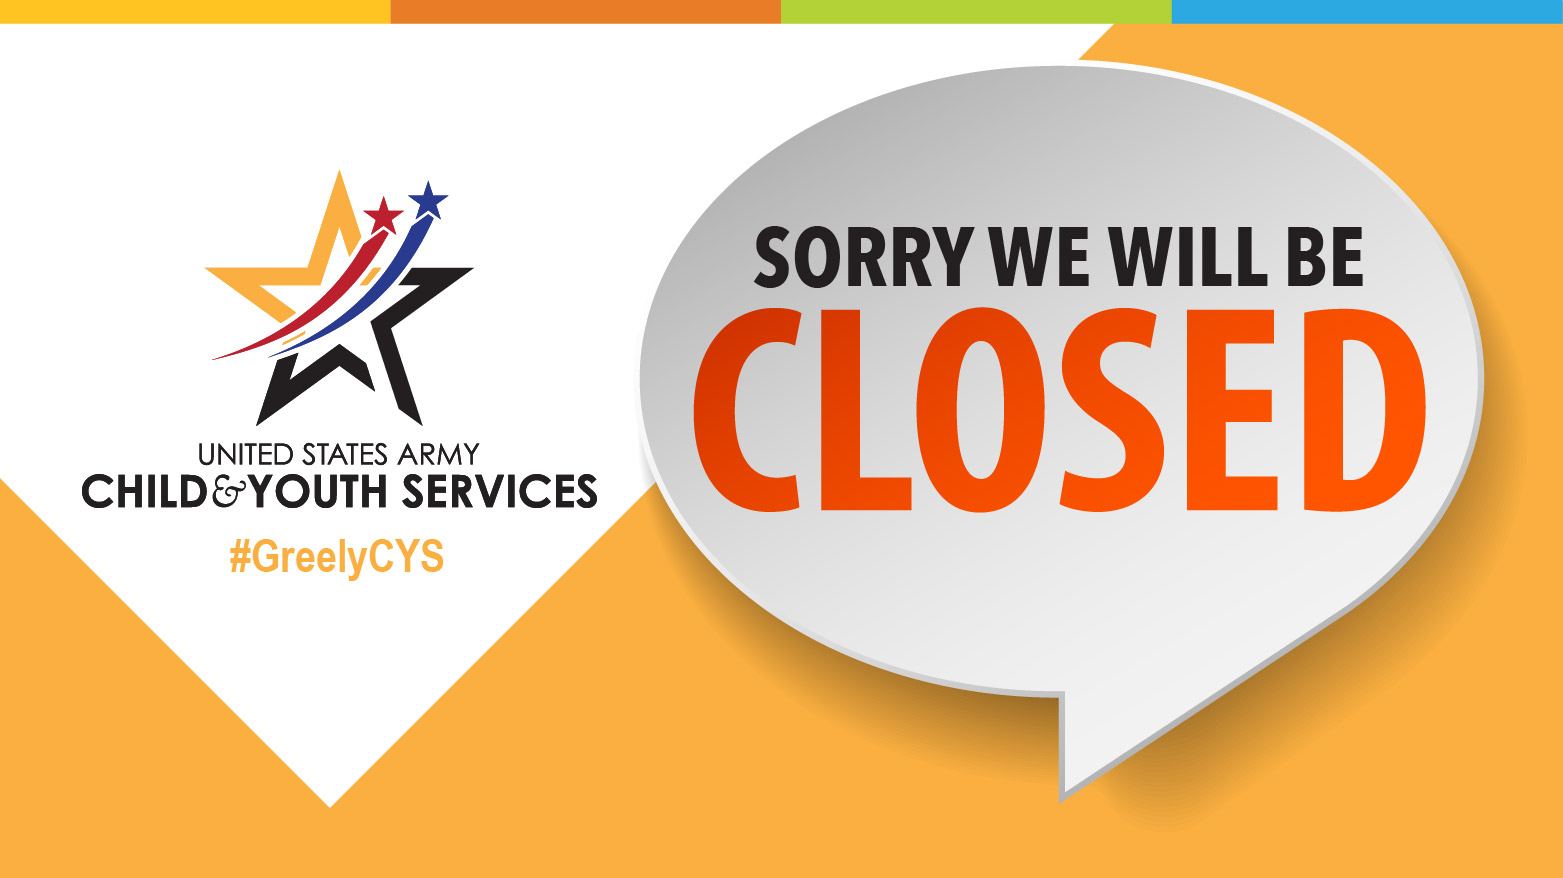 CYS Closure Notice